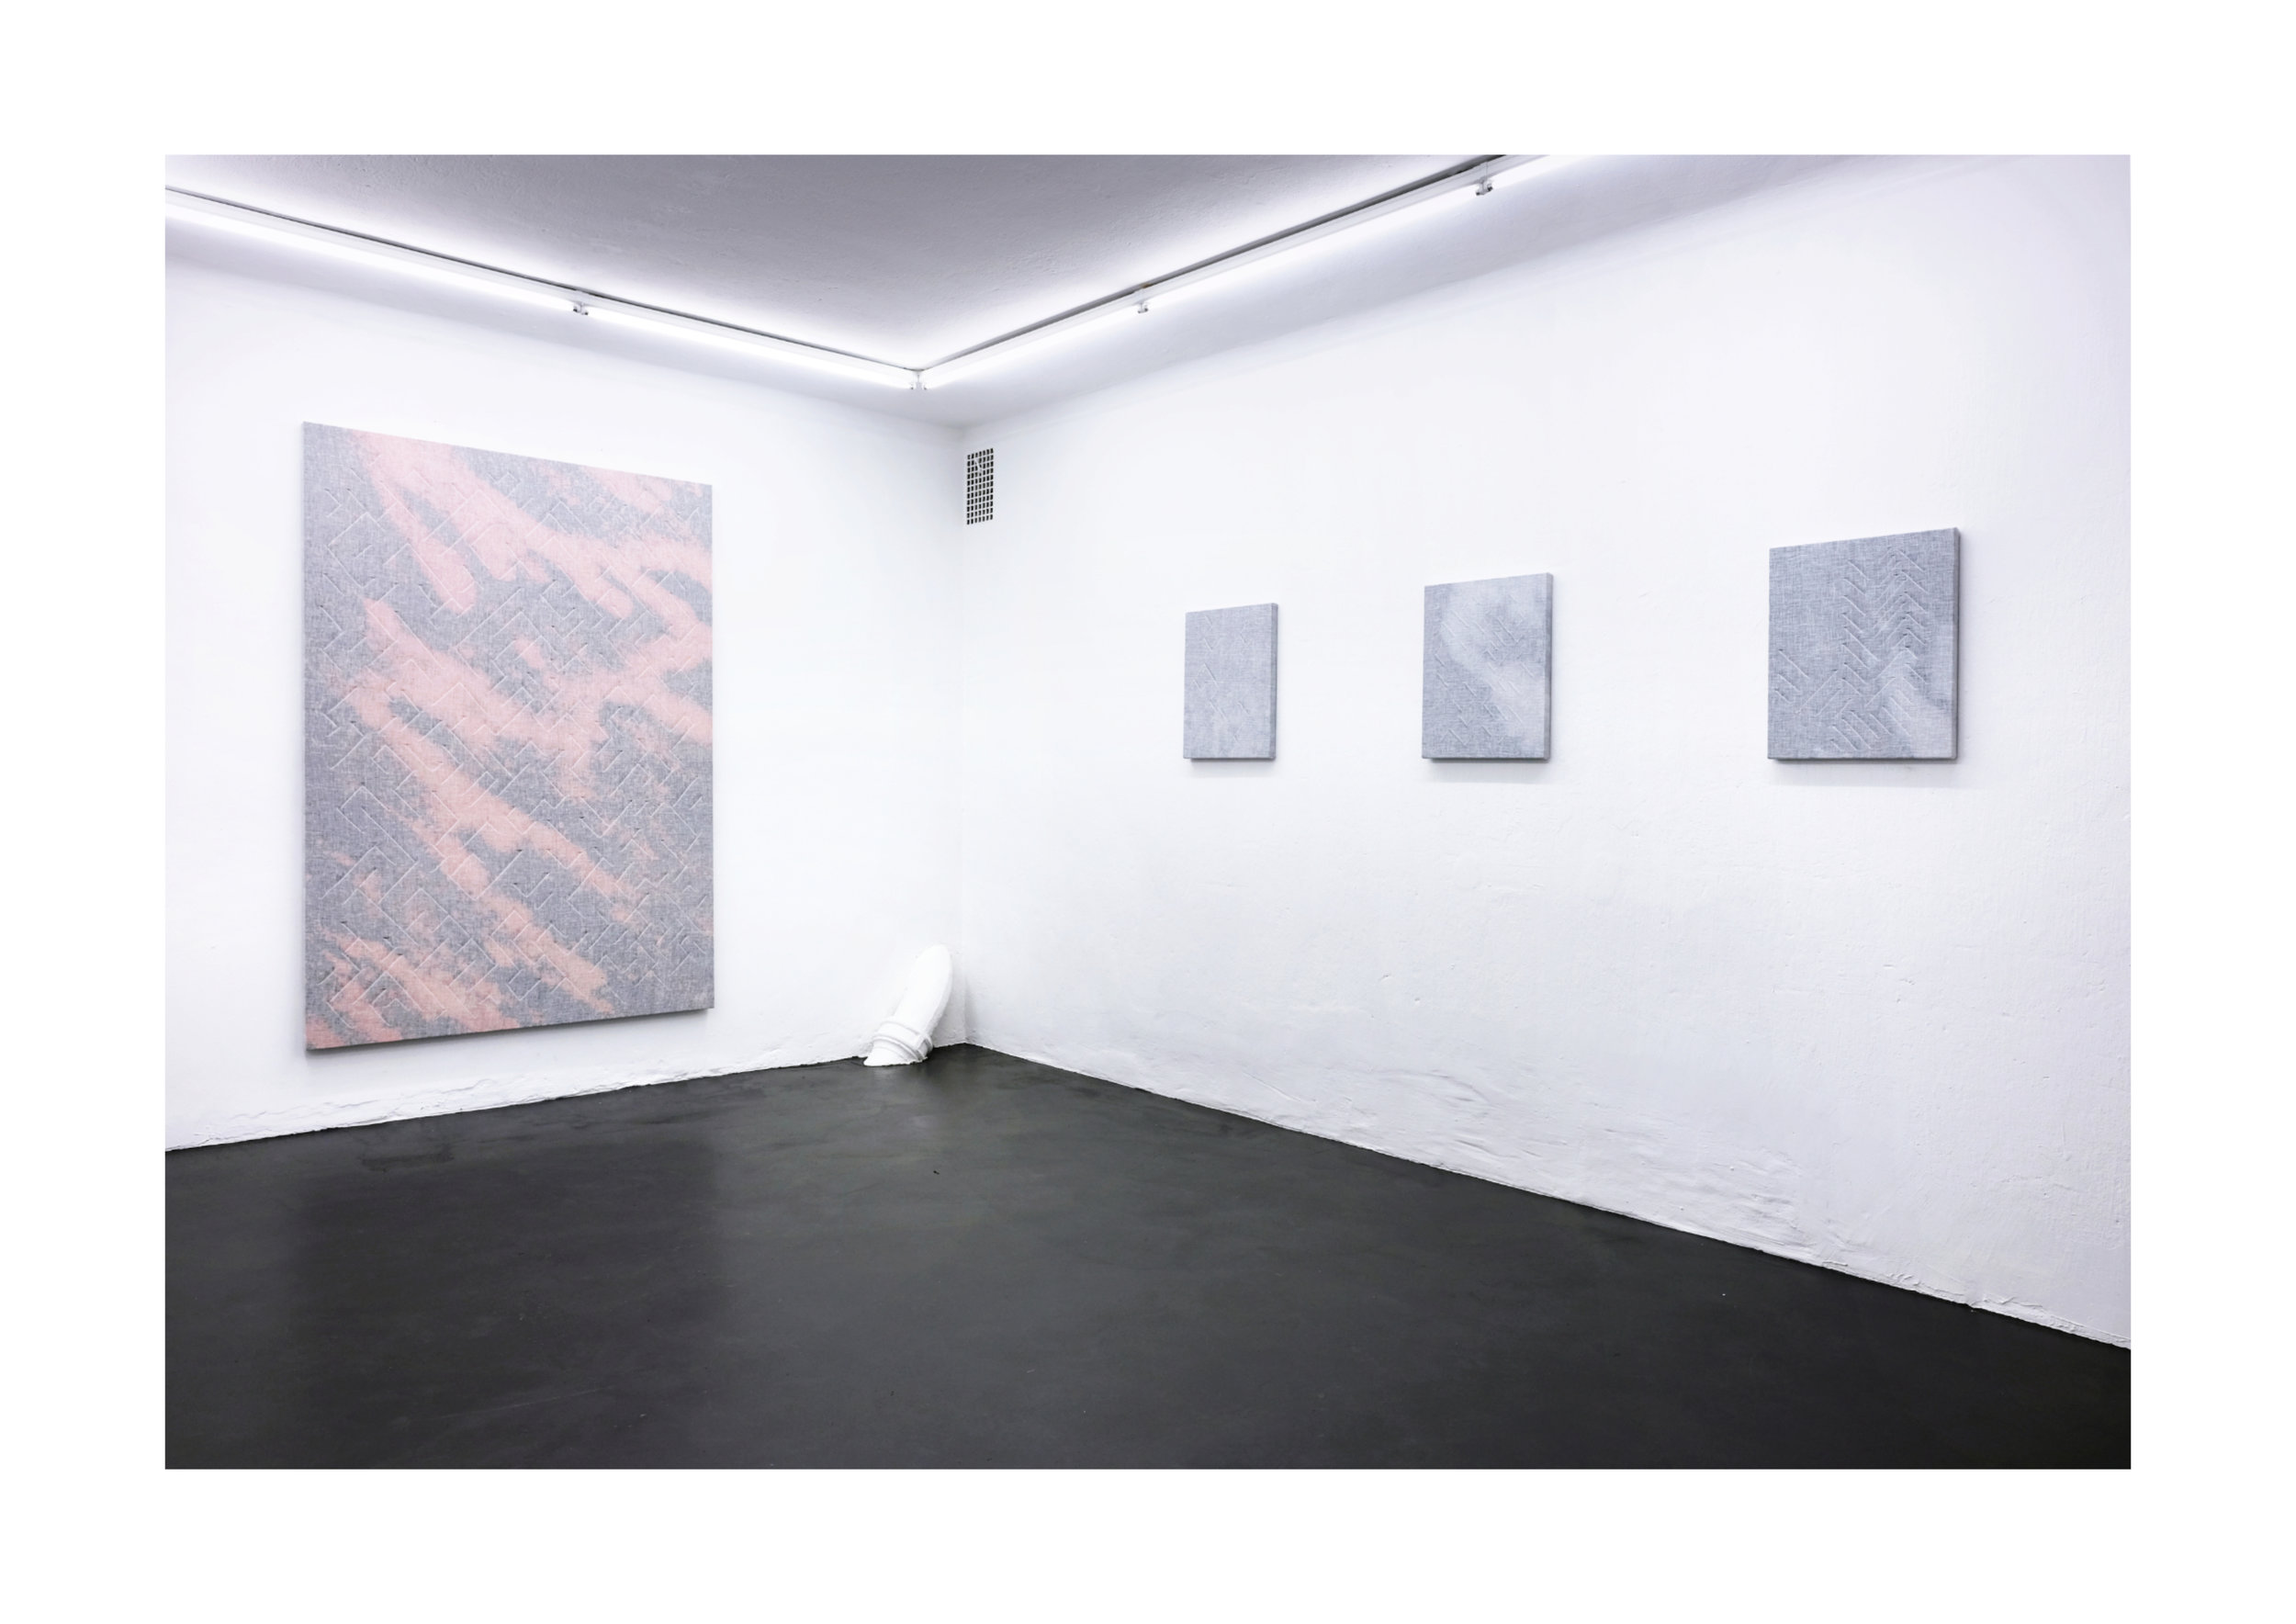 """DICK HEDLUND  """"SETTLE DOWN AND DRIFT OUT"""" Elastic Gallery,2018"""